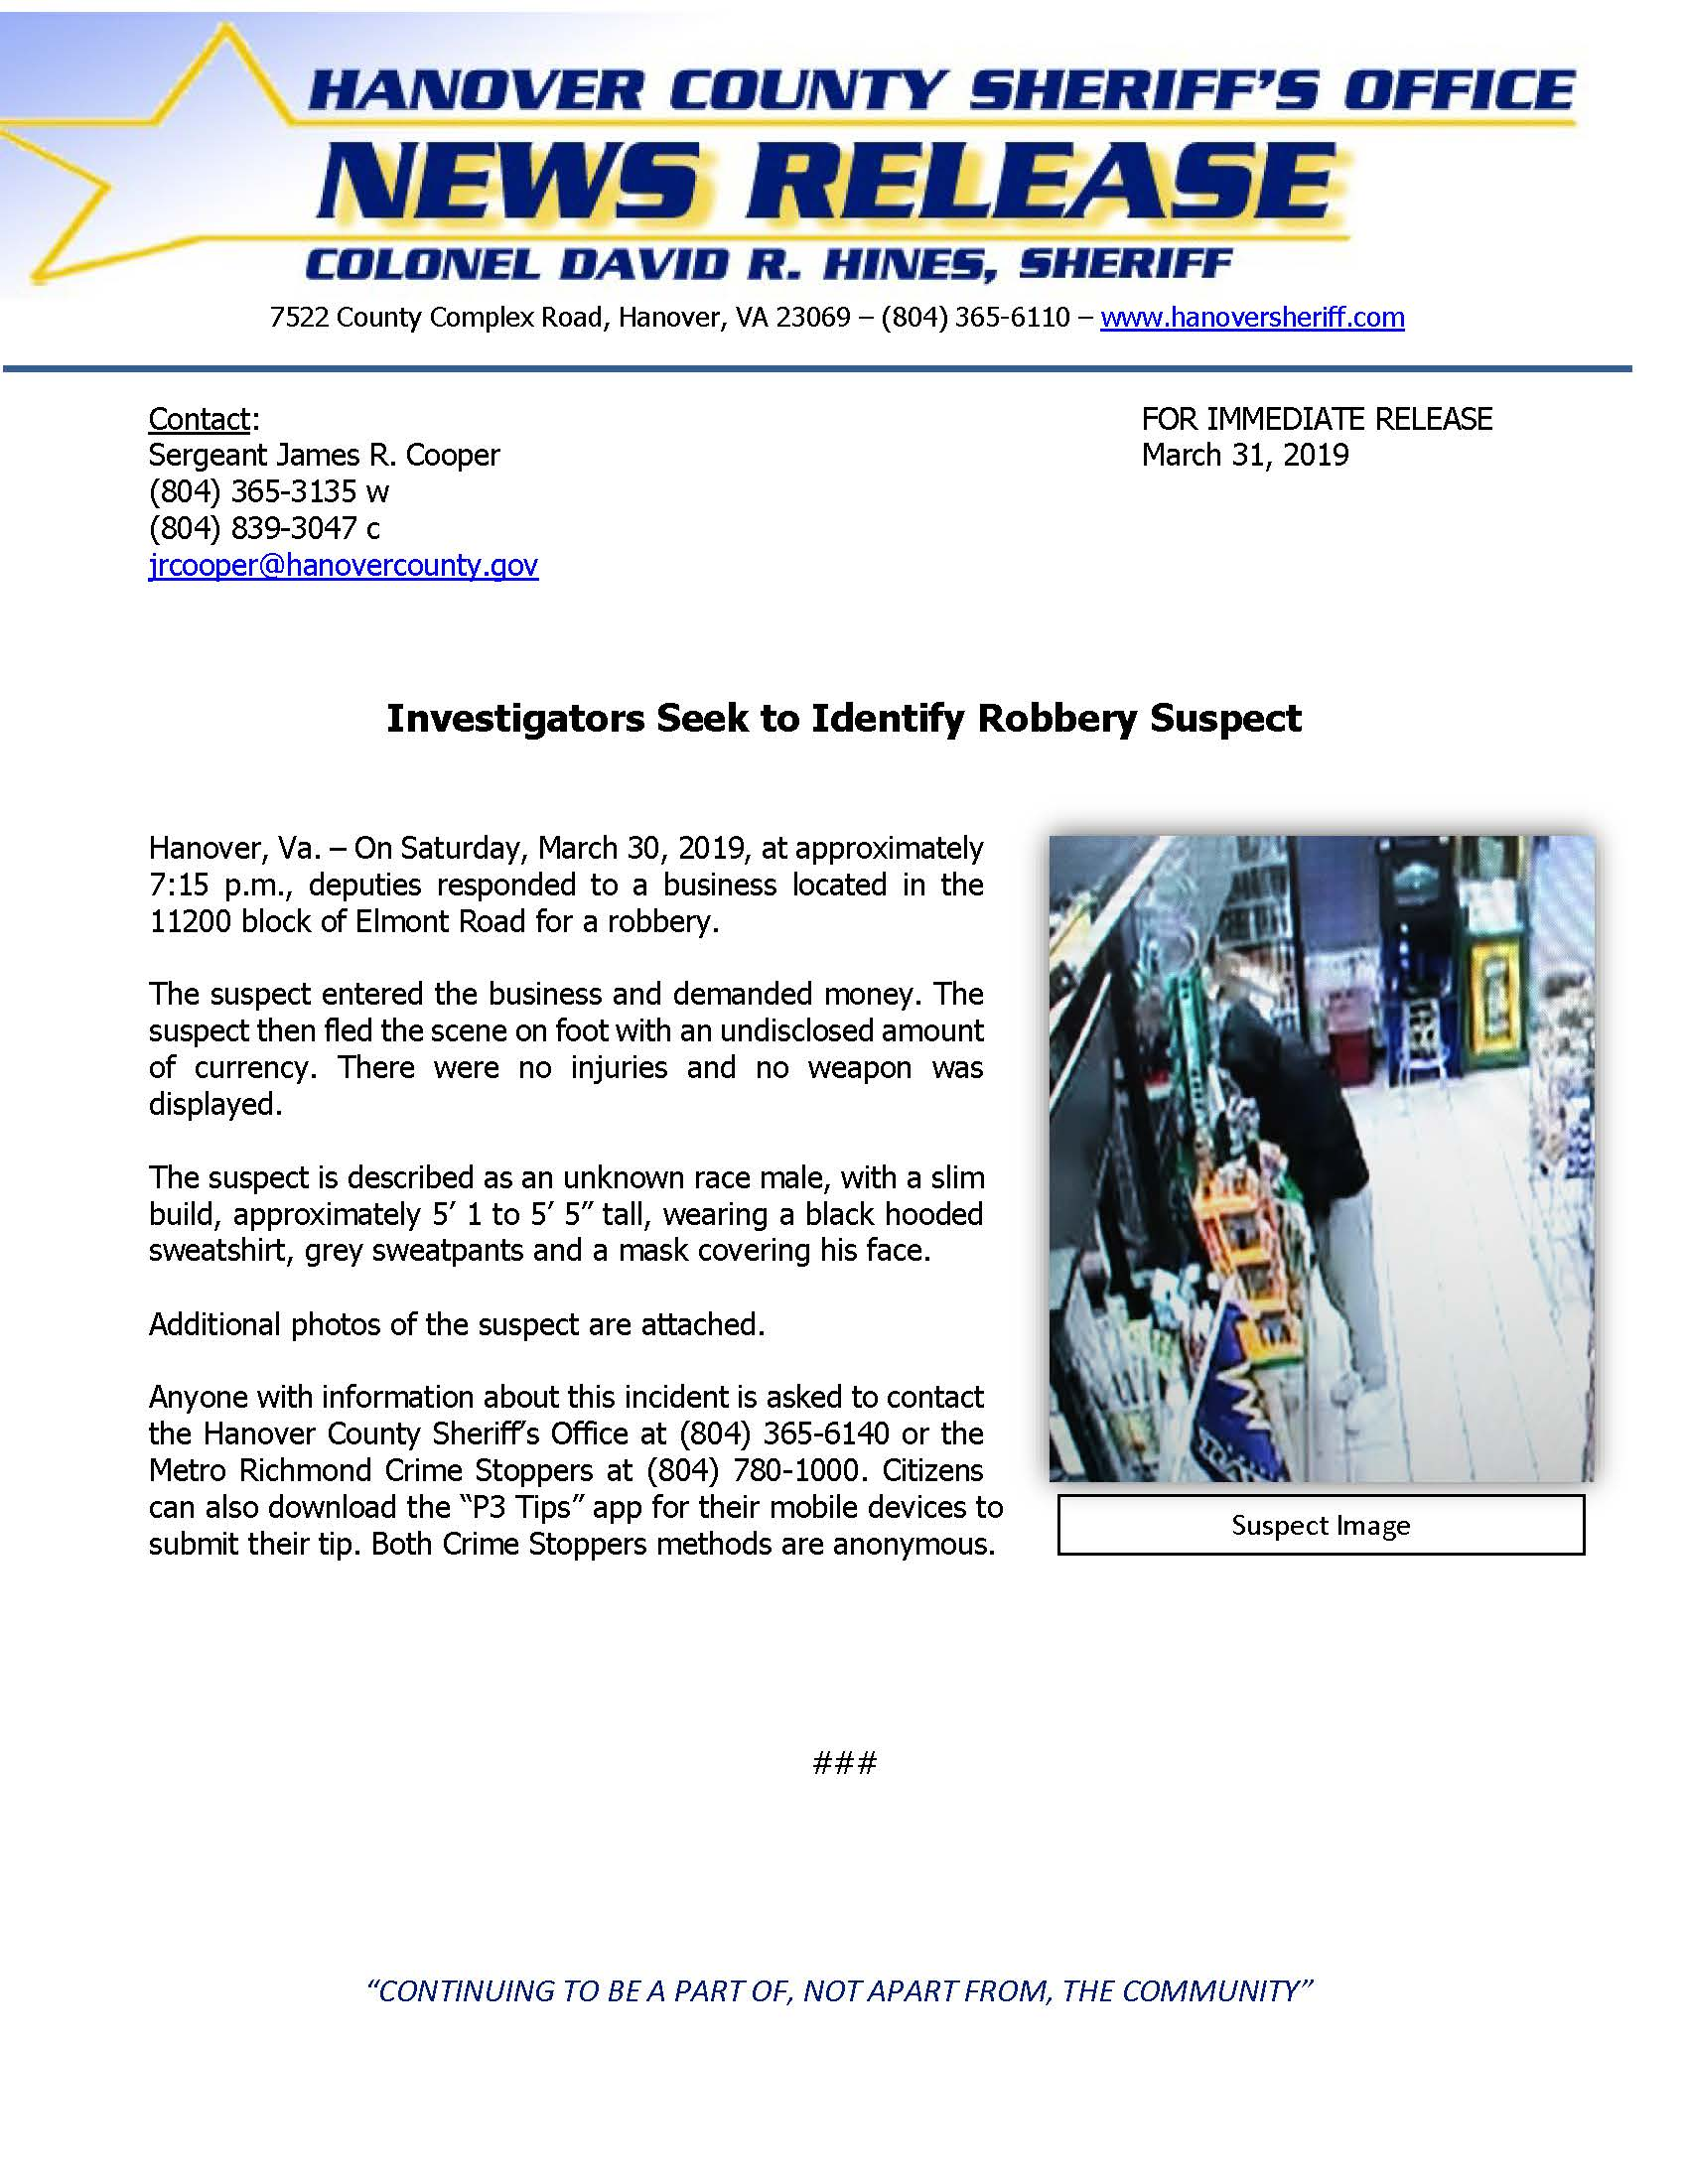 HCSO - Investigators Seek to Identify Robbery Suspect- March 31, 2019